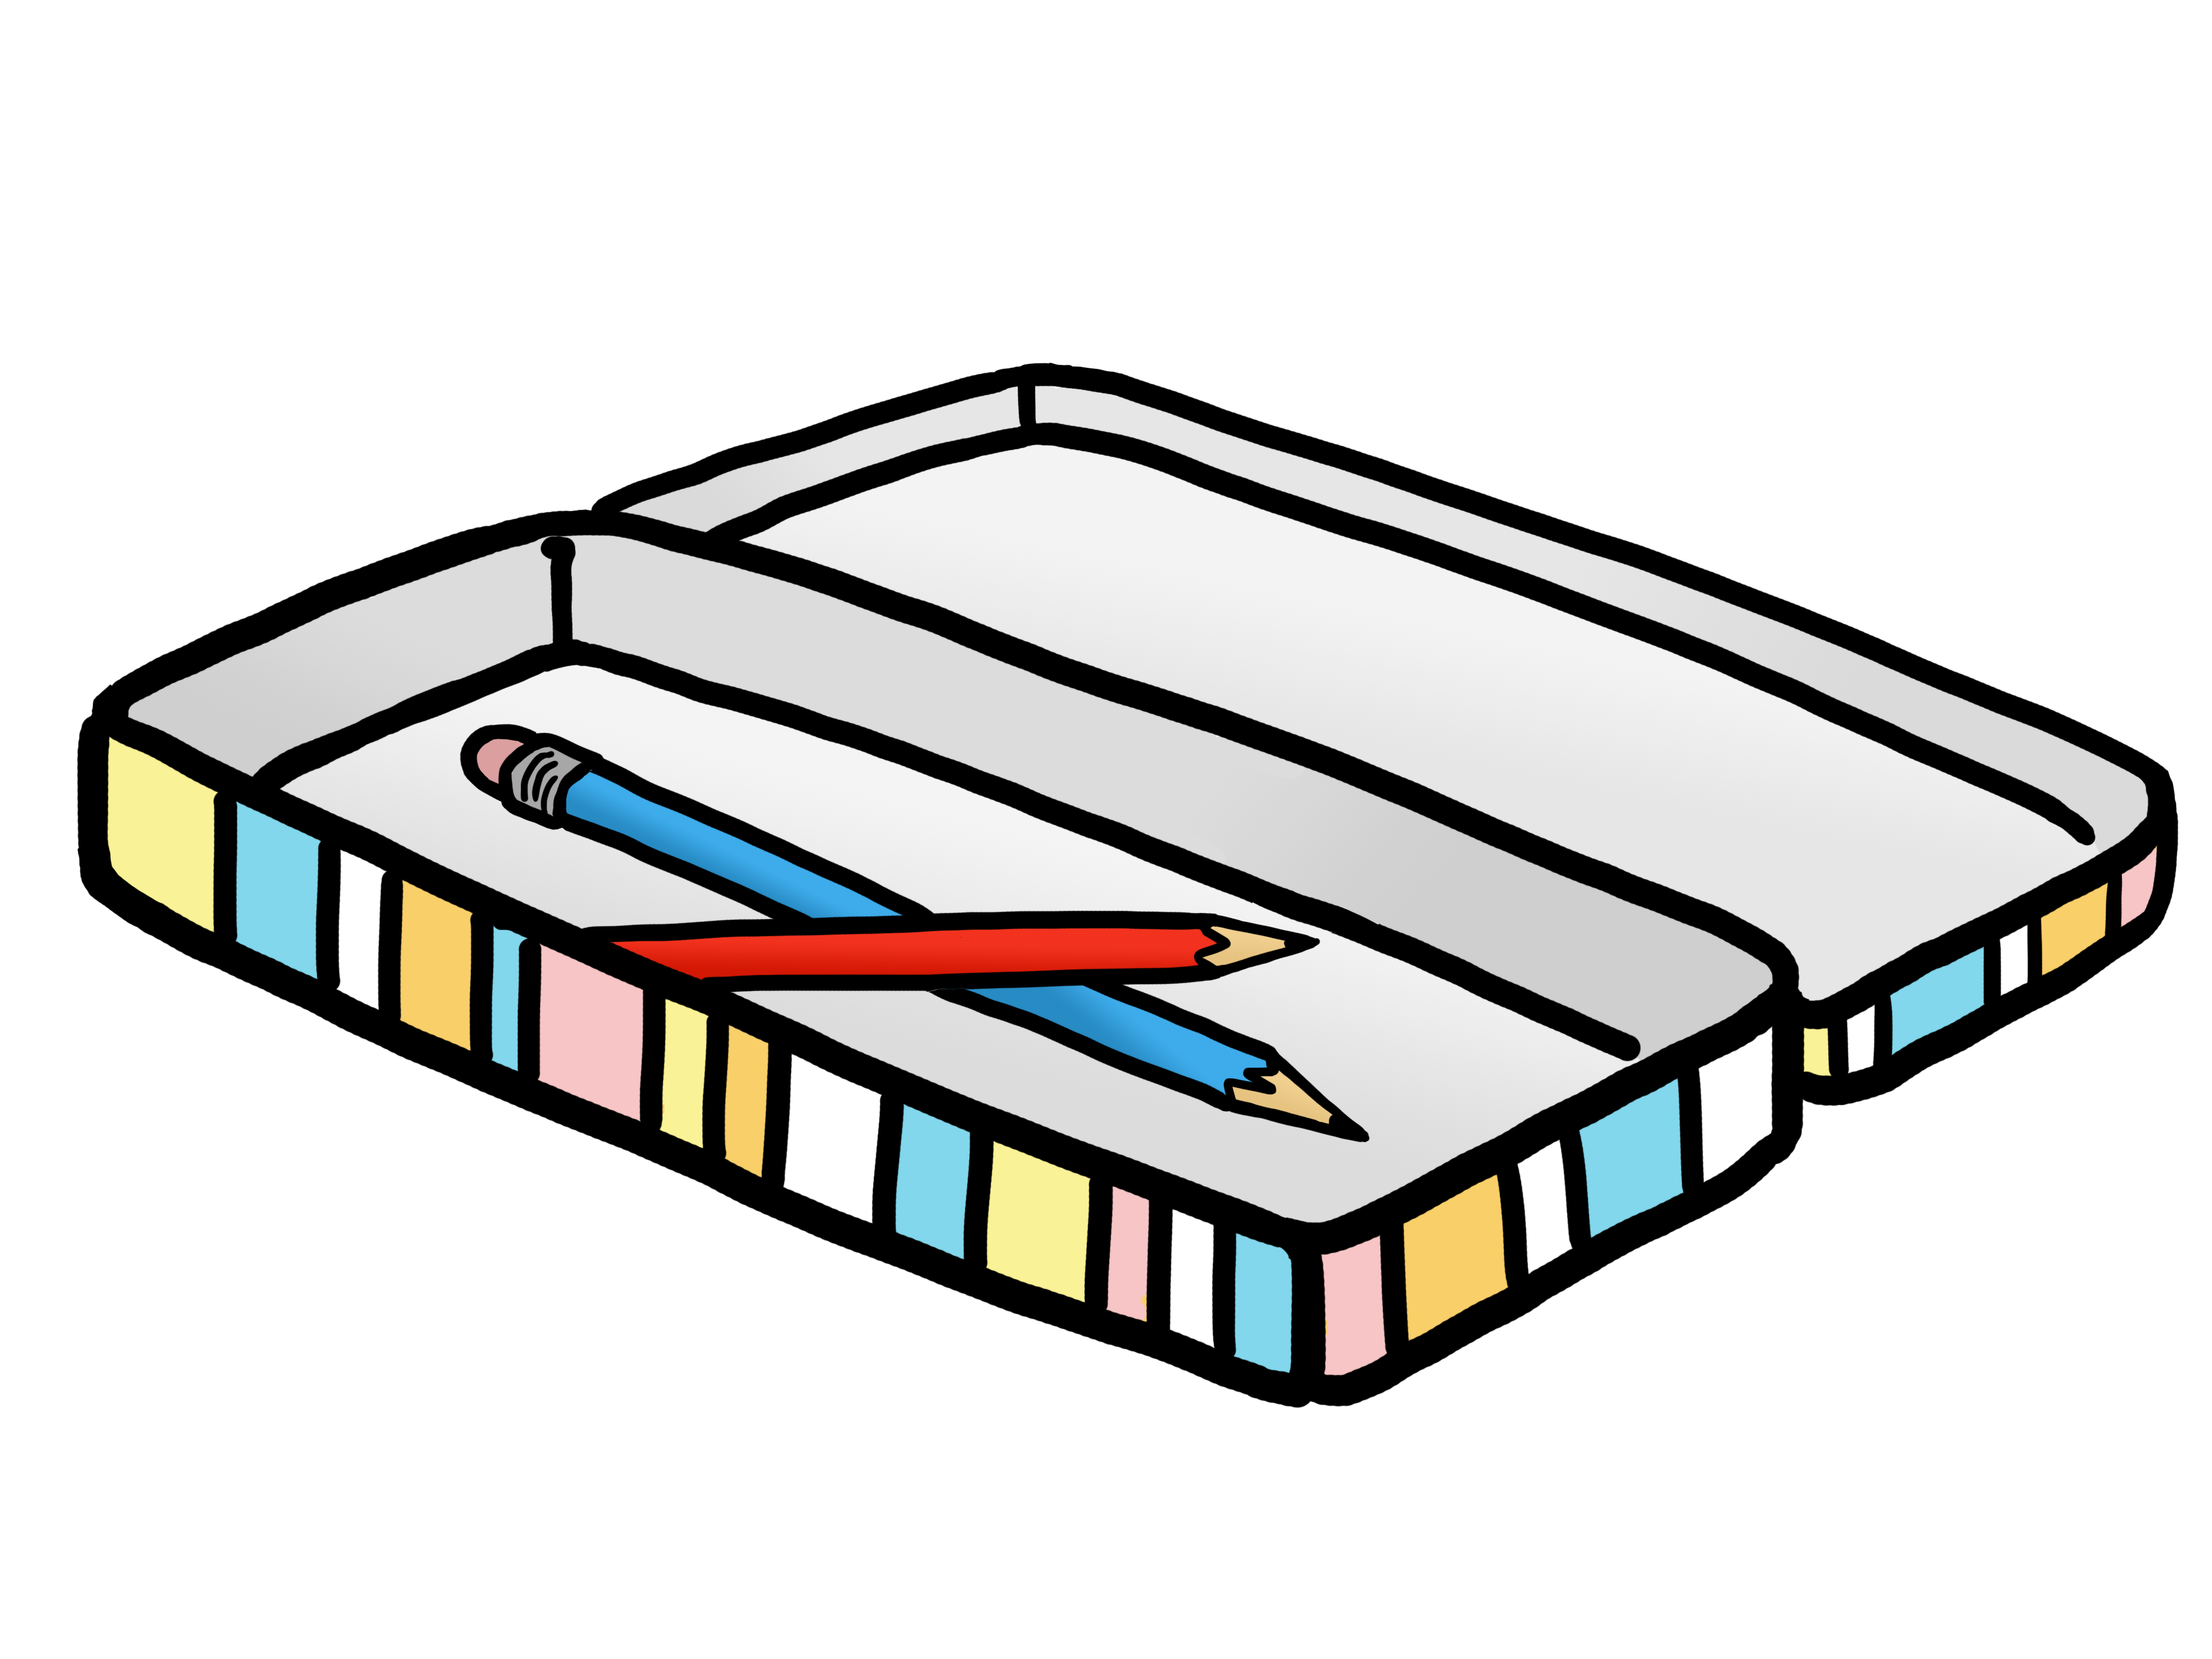 Eraser clipart stationary. Clip art library image